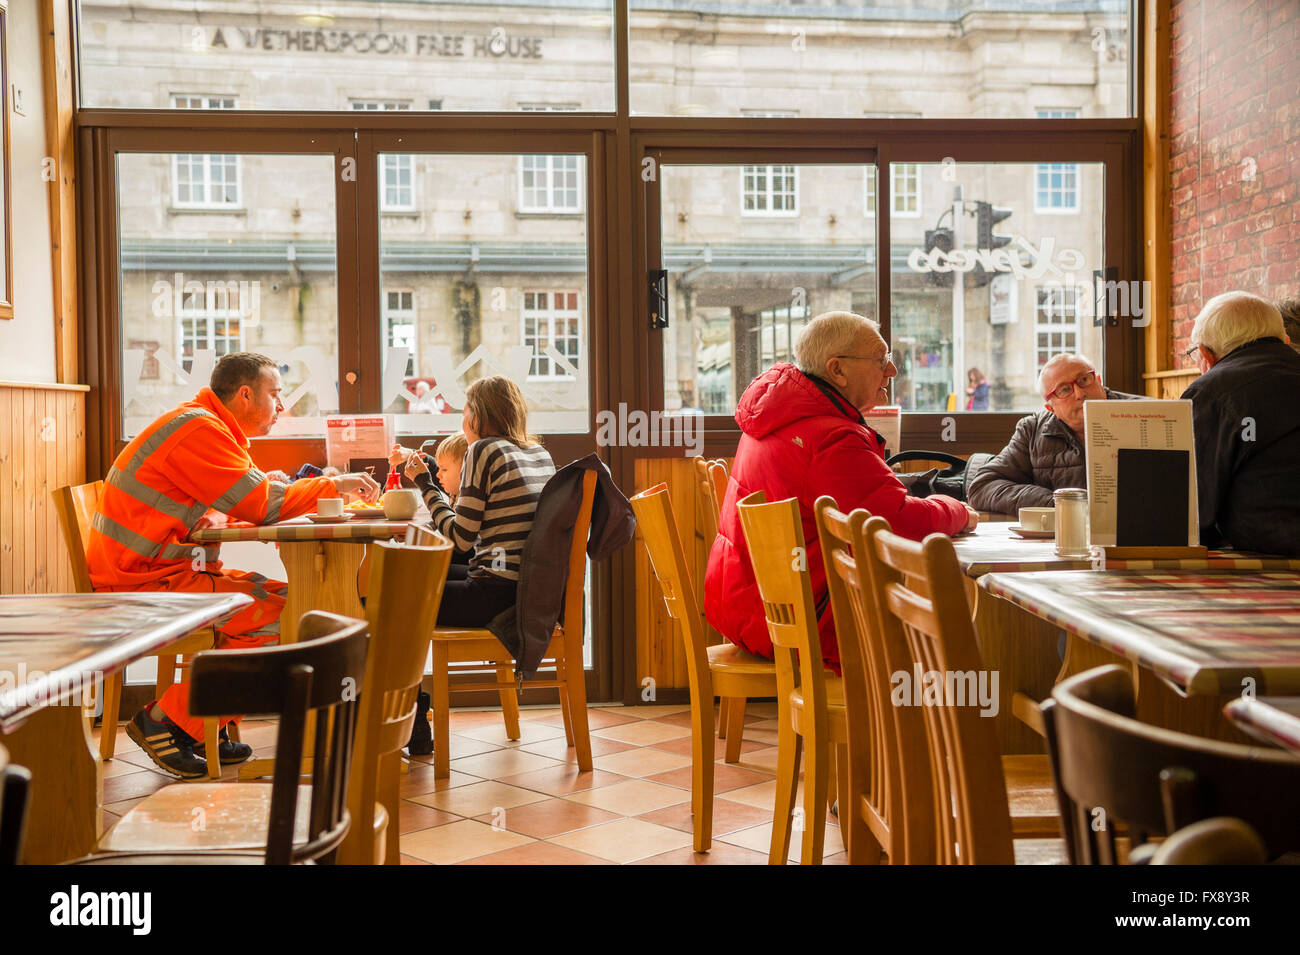 People sitting at tables in the Express Cafe , a small independently owned local fish and chip shop.Aberystwyth - Stock Image